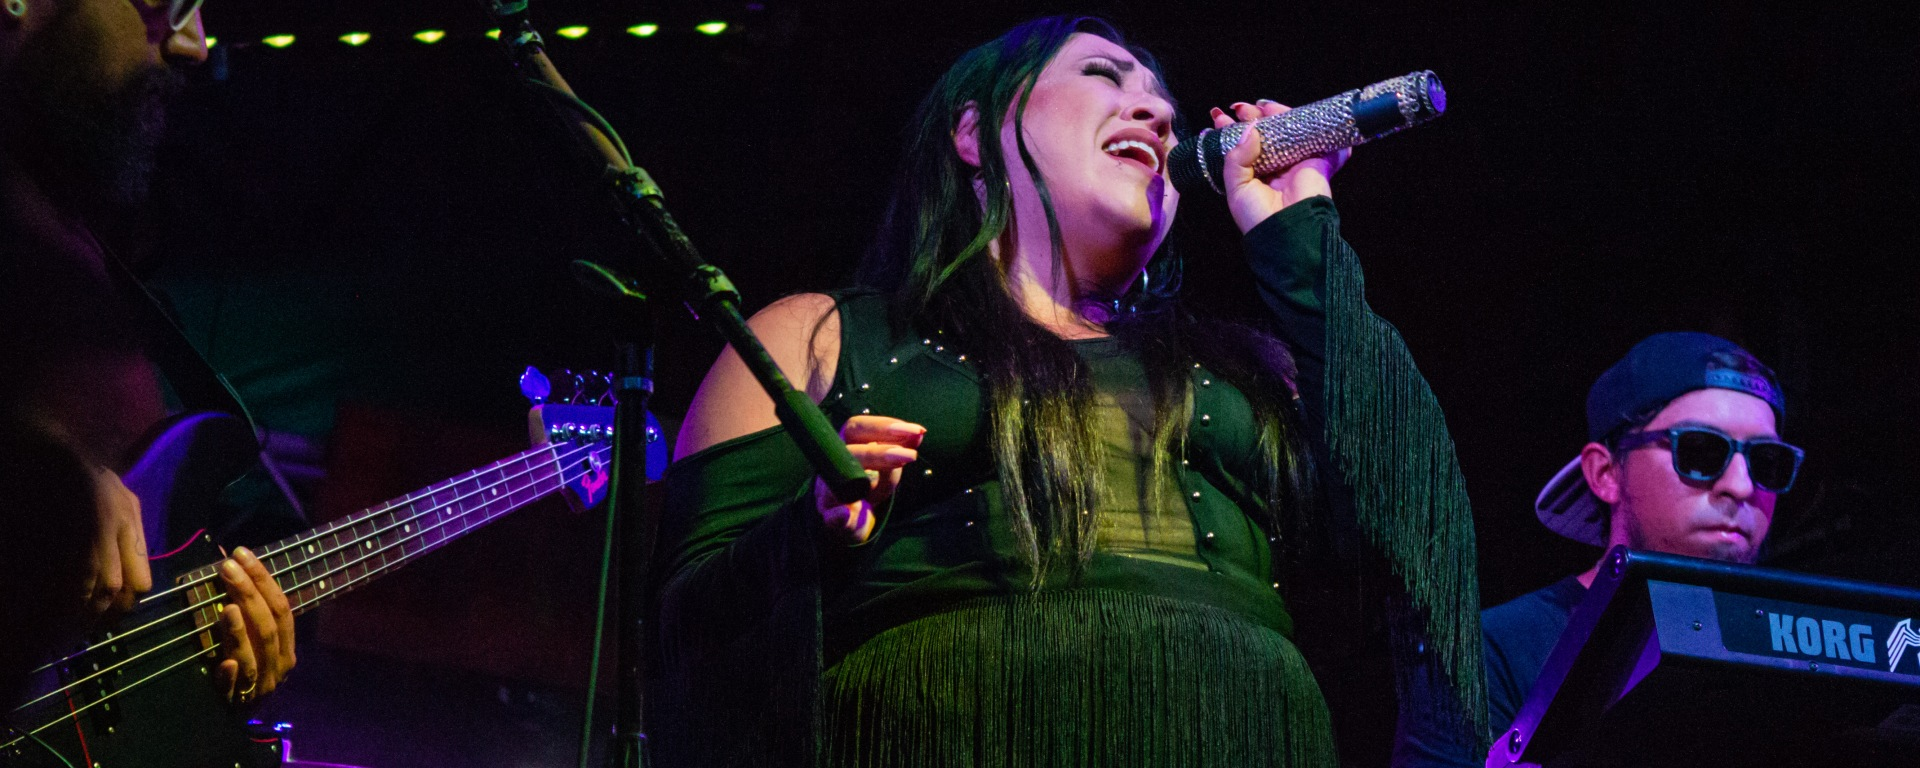 The photo features a woman singing with a microphone in her hand dressed in a black fringe dress